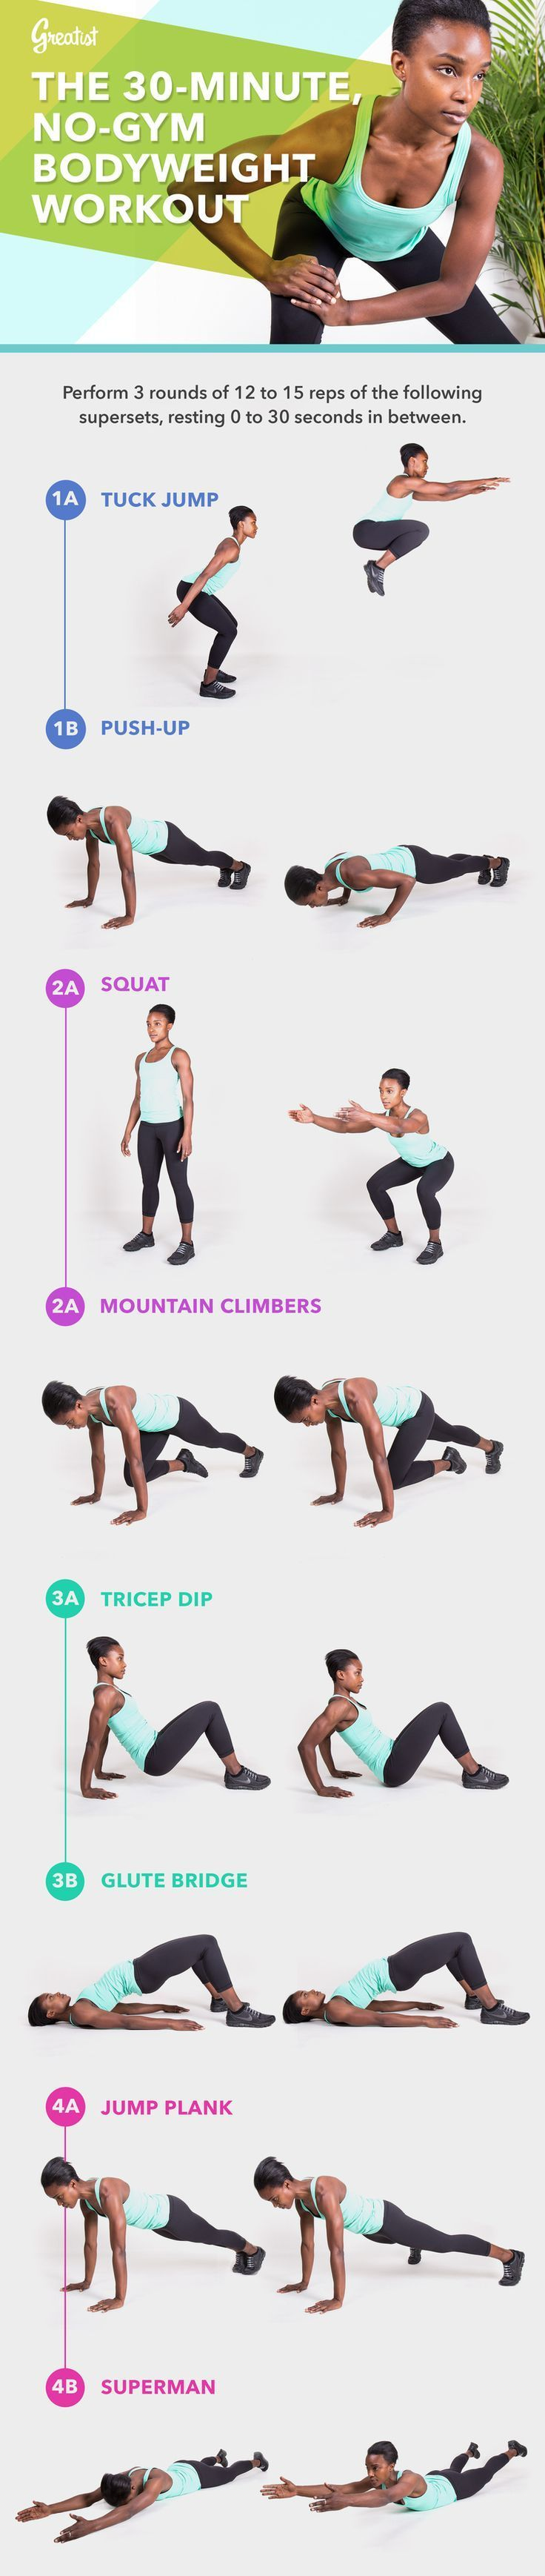 30-Minute Home Bodyweight Workout — Can't get to the gym today? No problem. This quick home workout will get you working just as hard. #bodyweight #workout #fitness #greatist